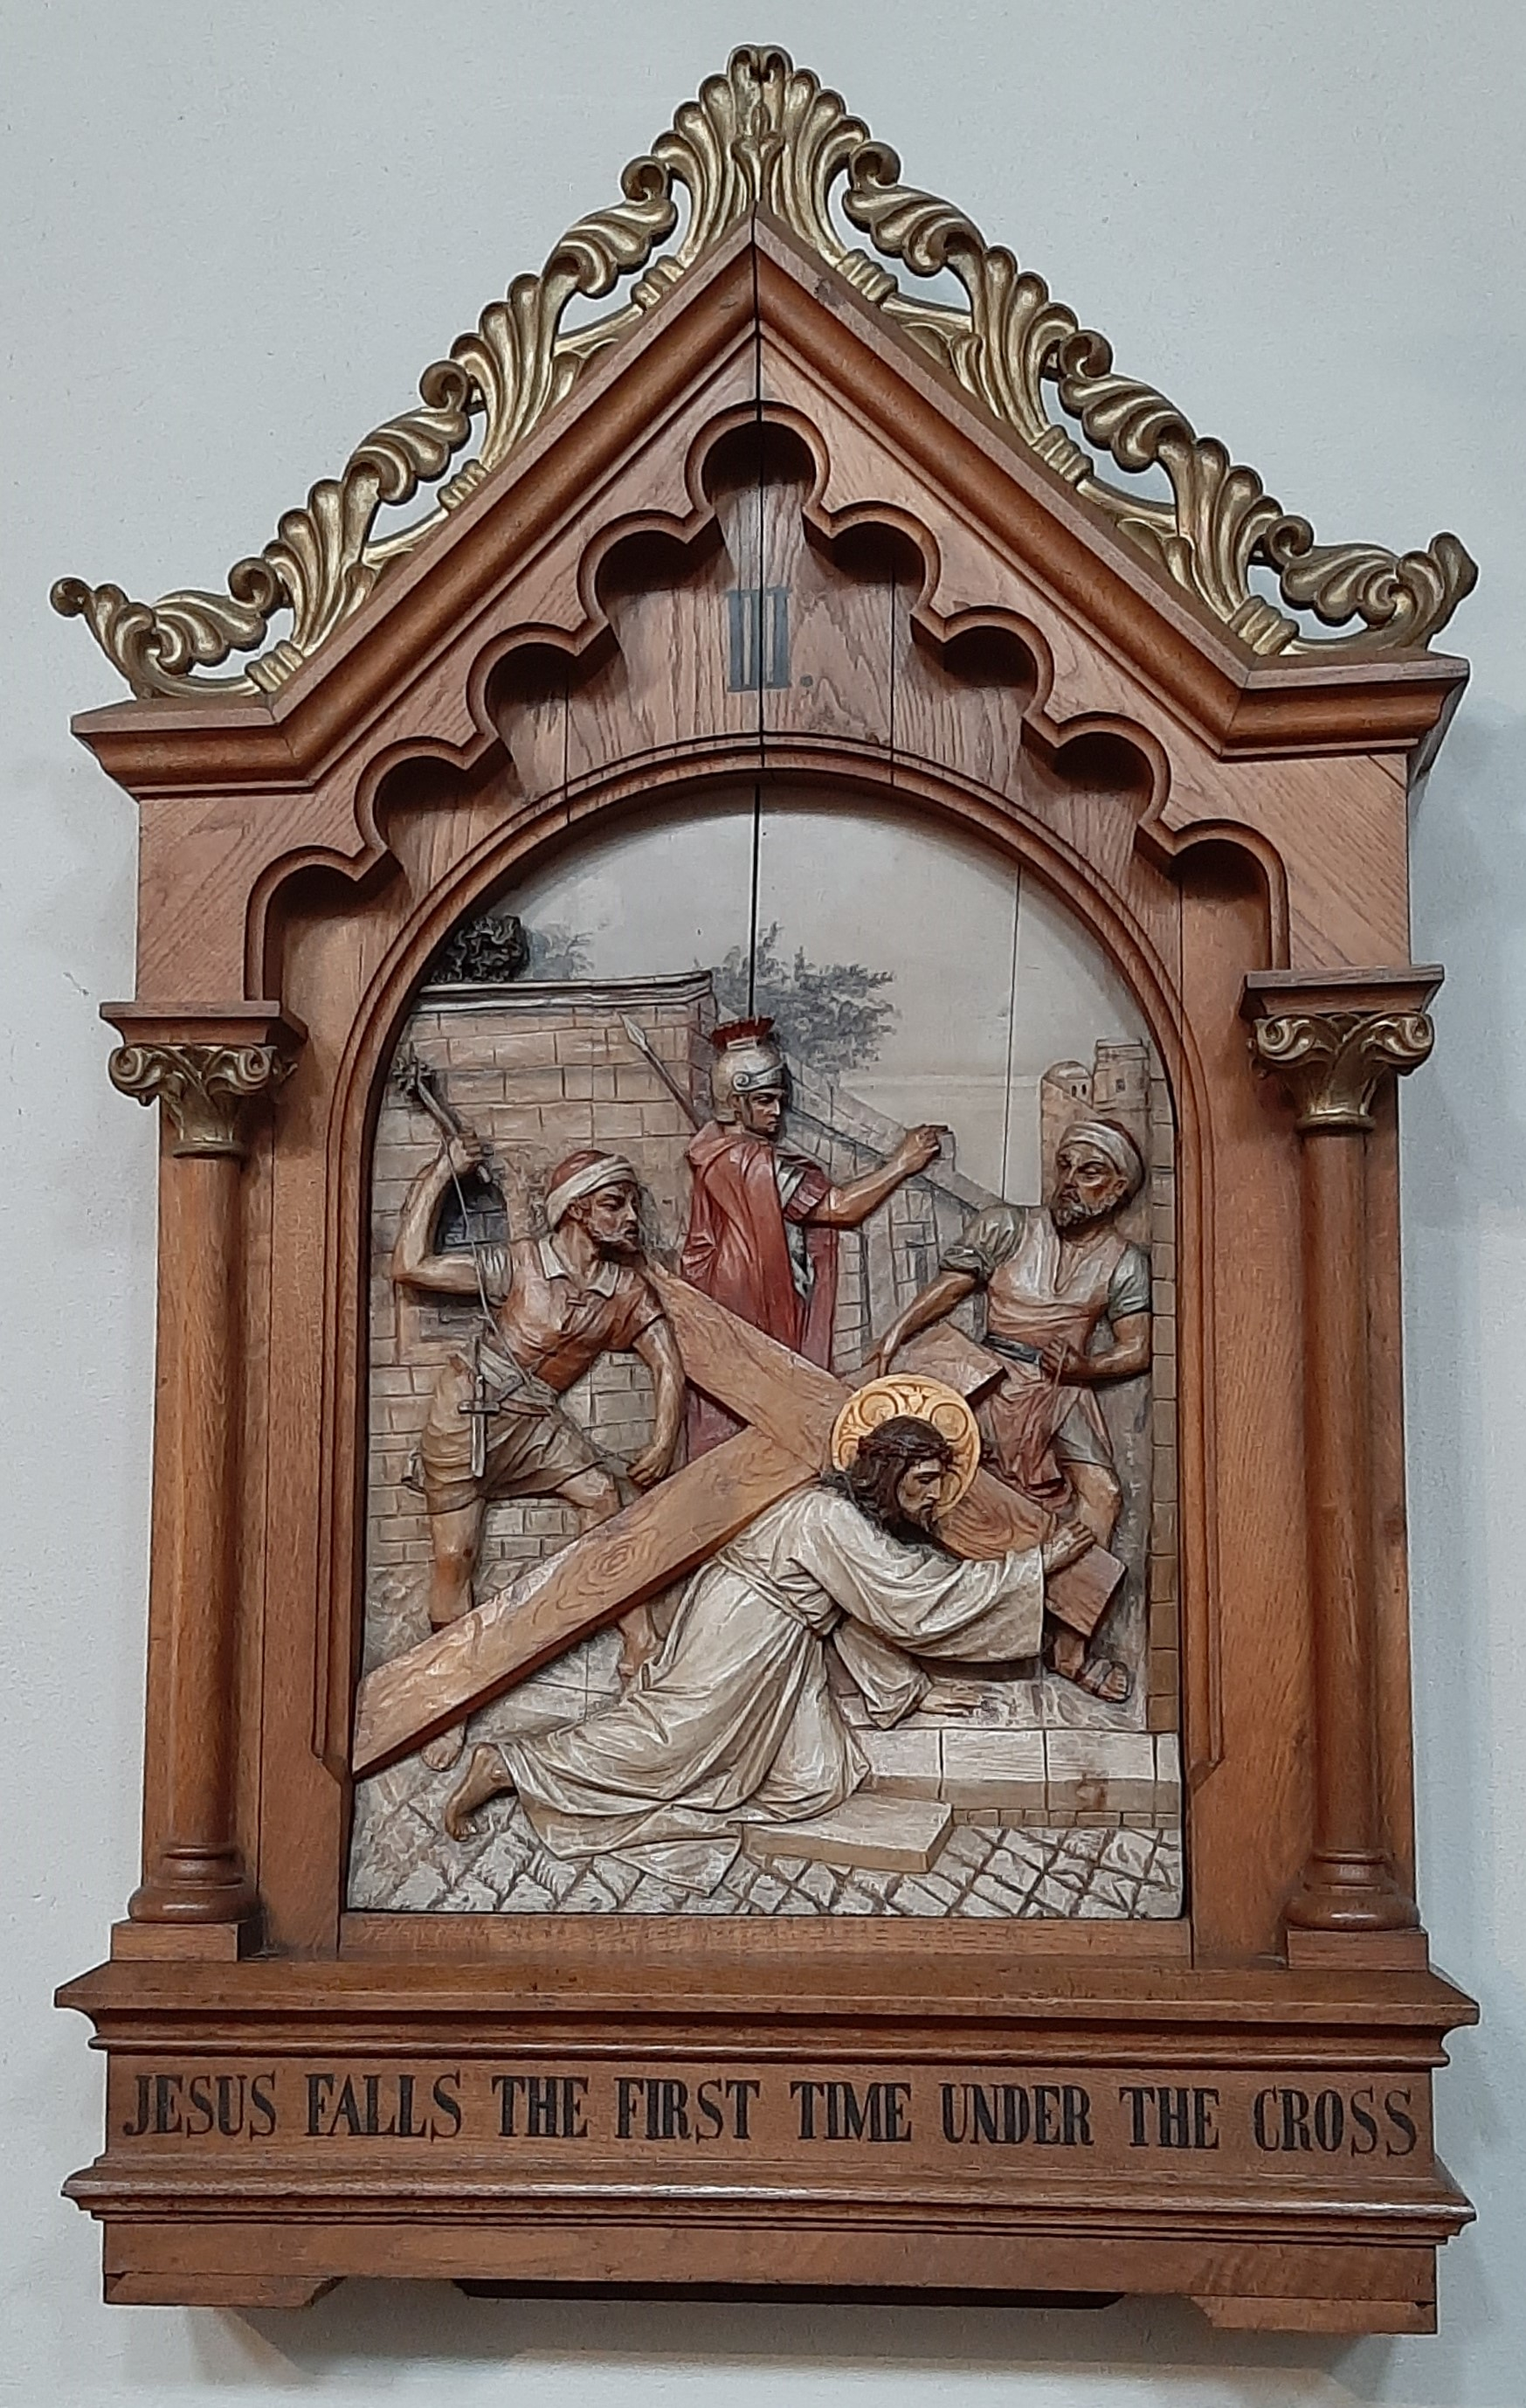 Third Station: Jesus falls the first time.